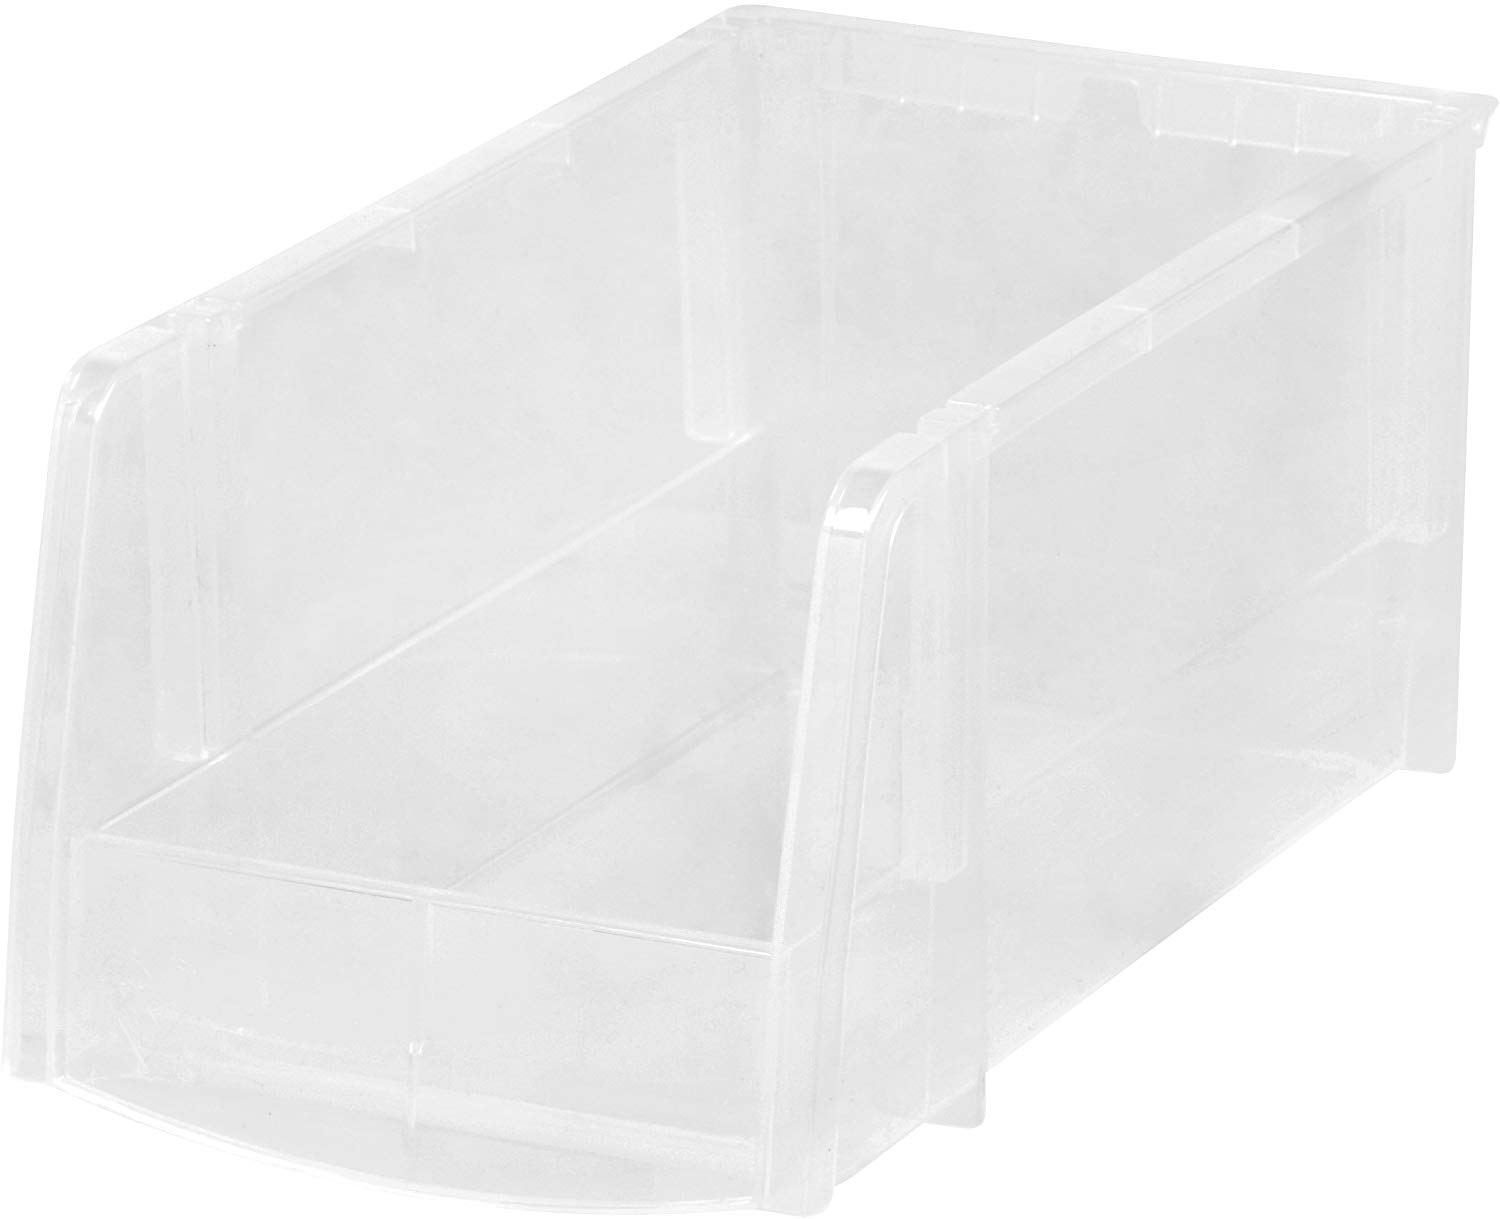 6 Inch x 11 Inch IP Clear Stacking Bin